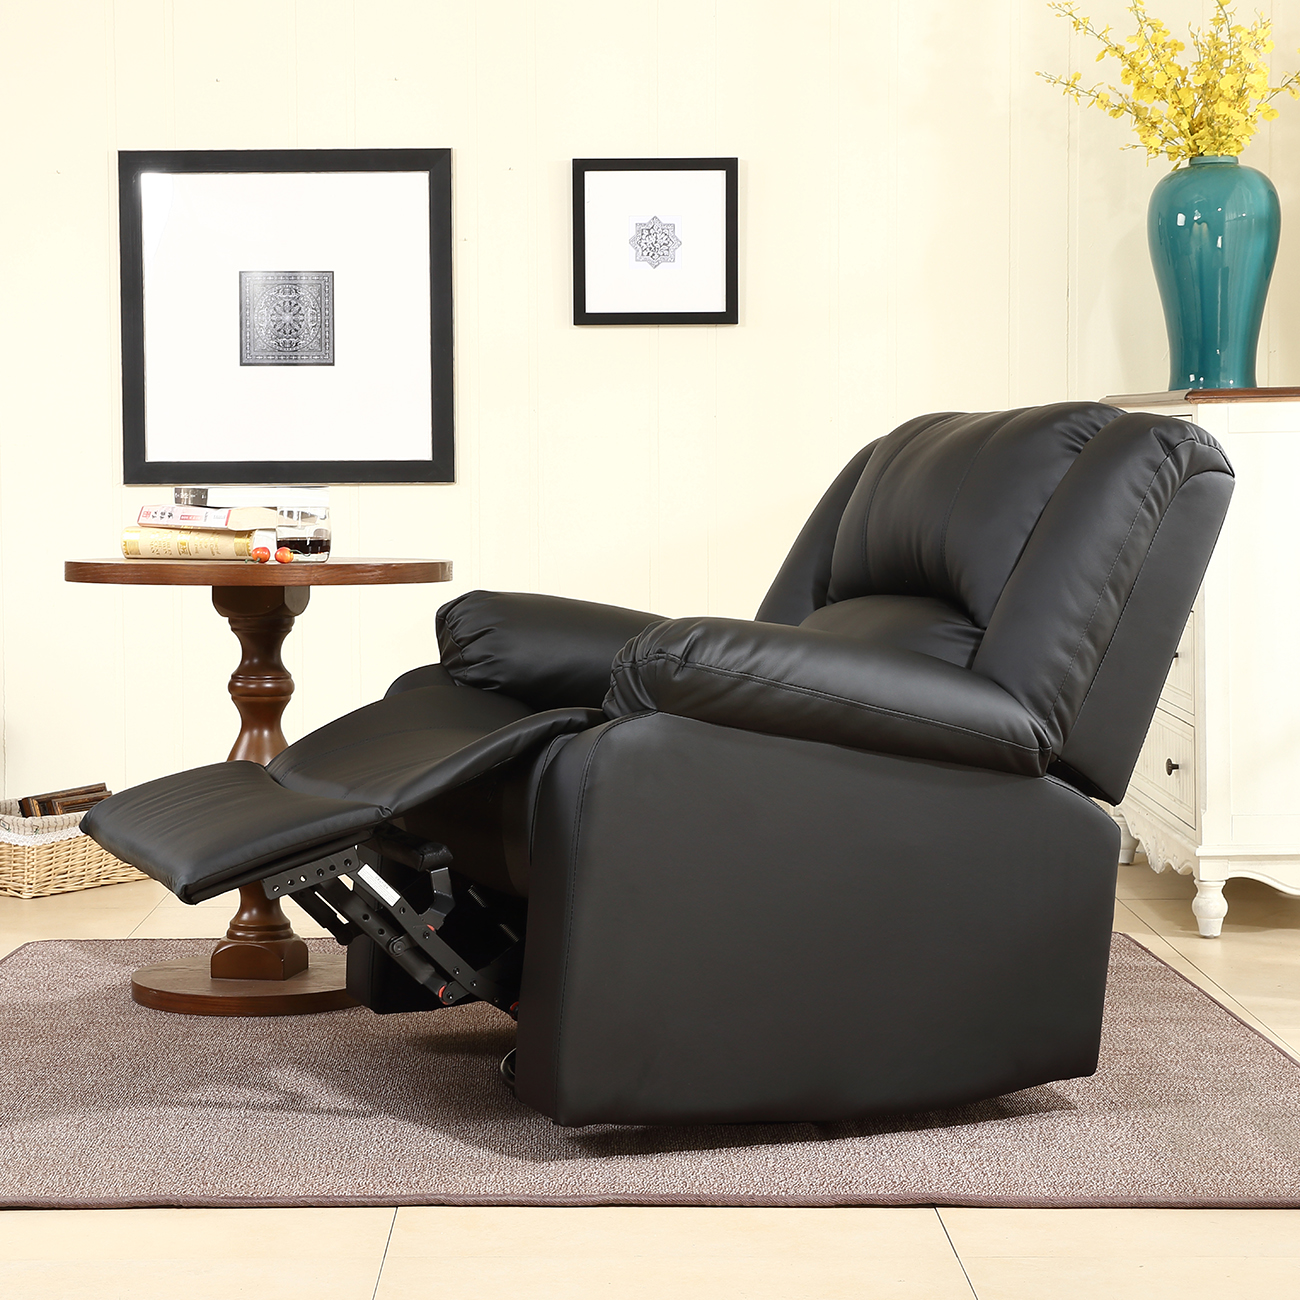 new recliner and rocking swivel chair leather seat living room black and brown ebay. Black Bedroom Furniture Sets. Home Design Ideas